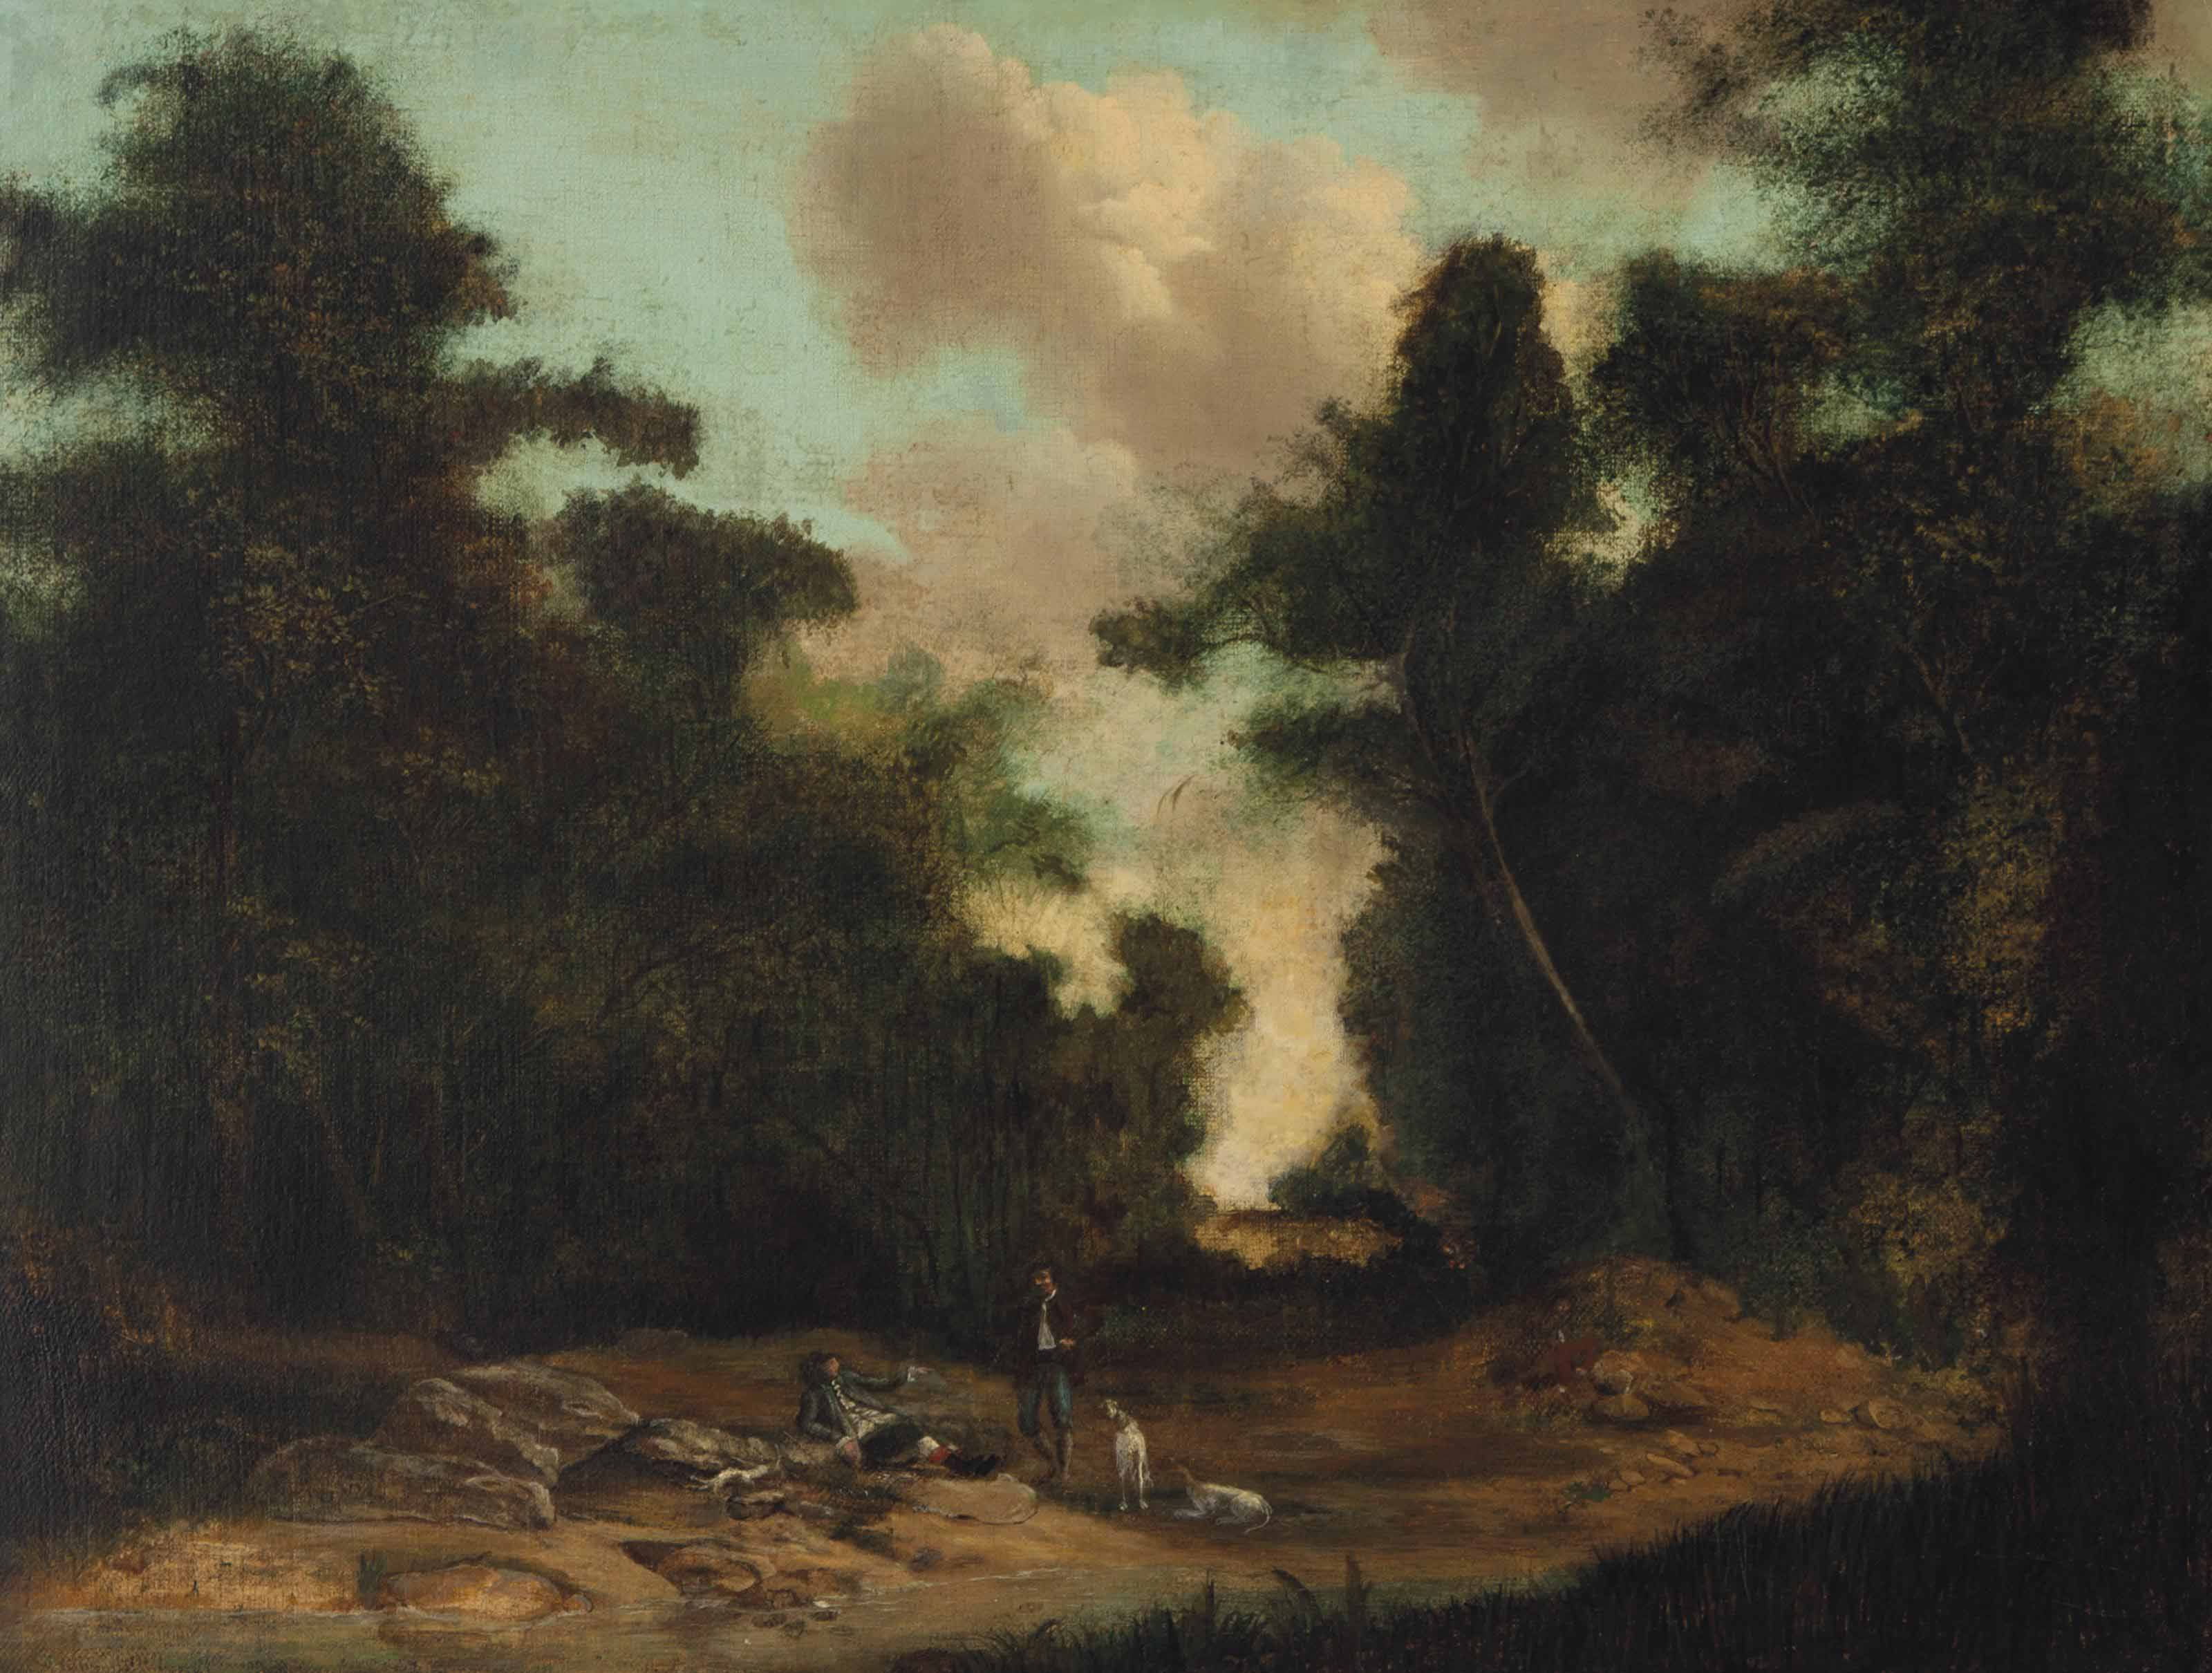 Figures with a dog in a wooded landscape